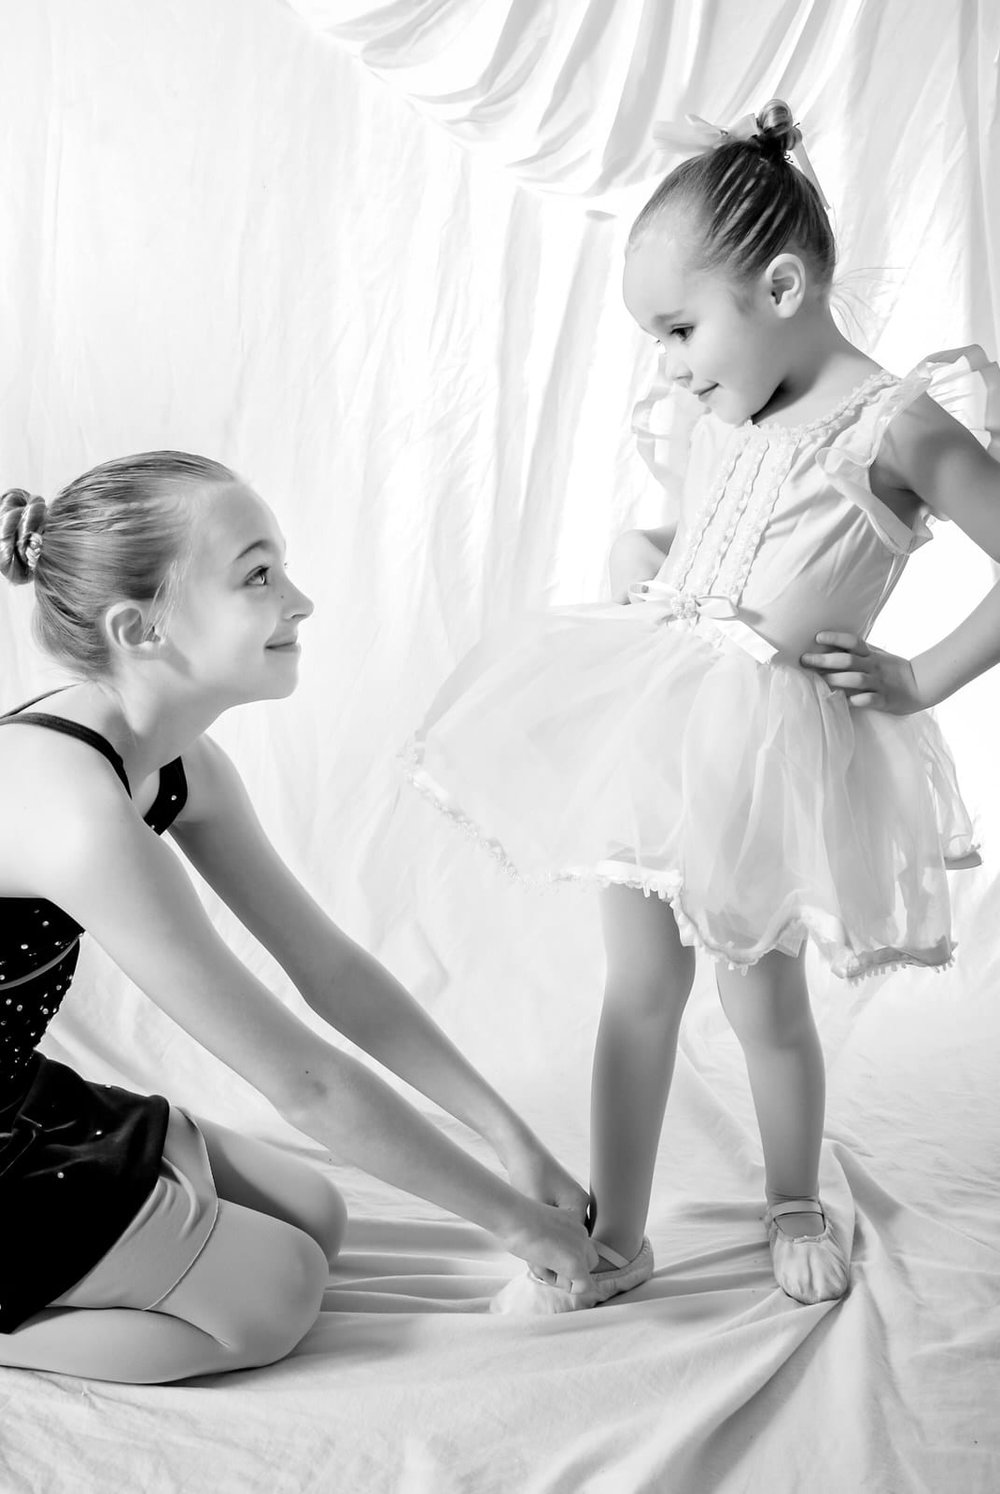 Ballet-Dancers-Girls-Tutus-Portrait.jpg